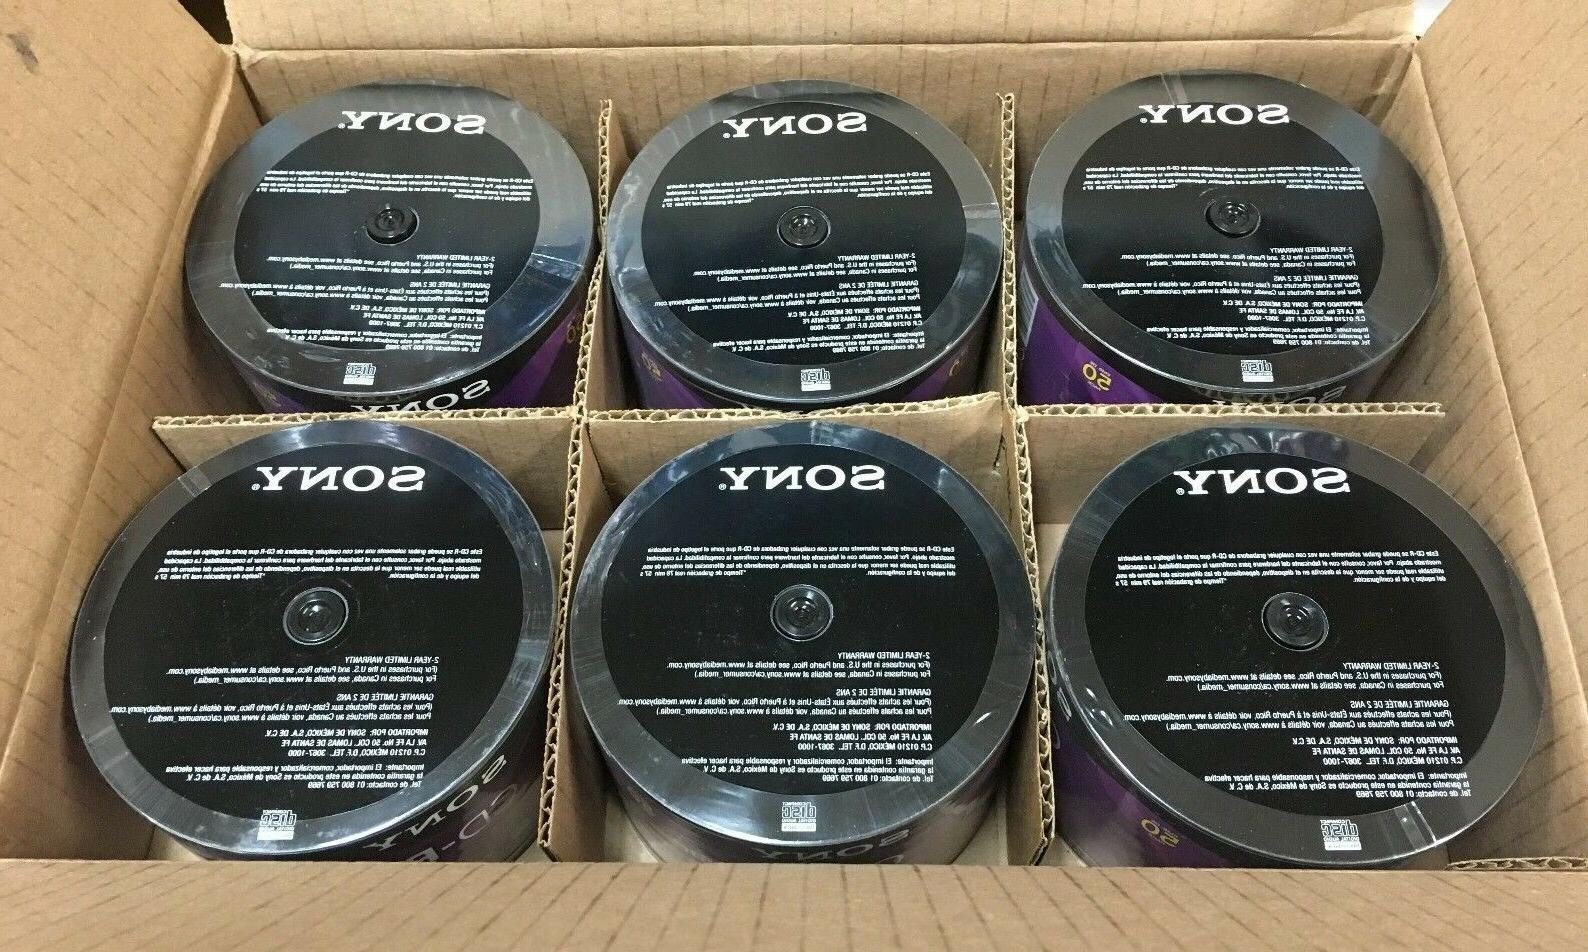 100 CD-R Digital Audio Recordable Disc